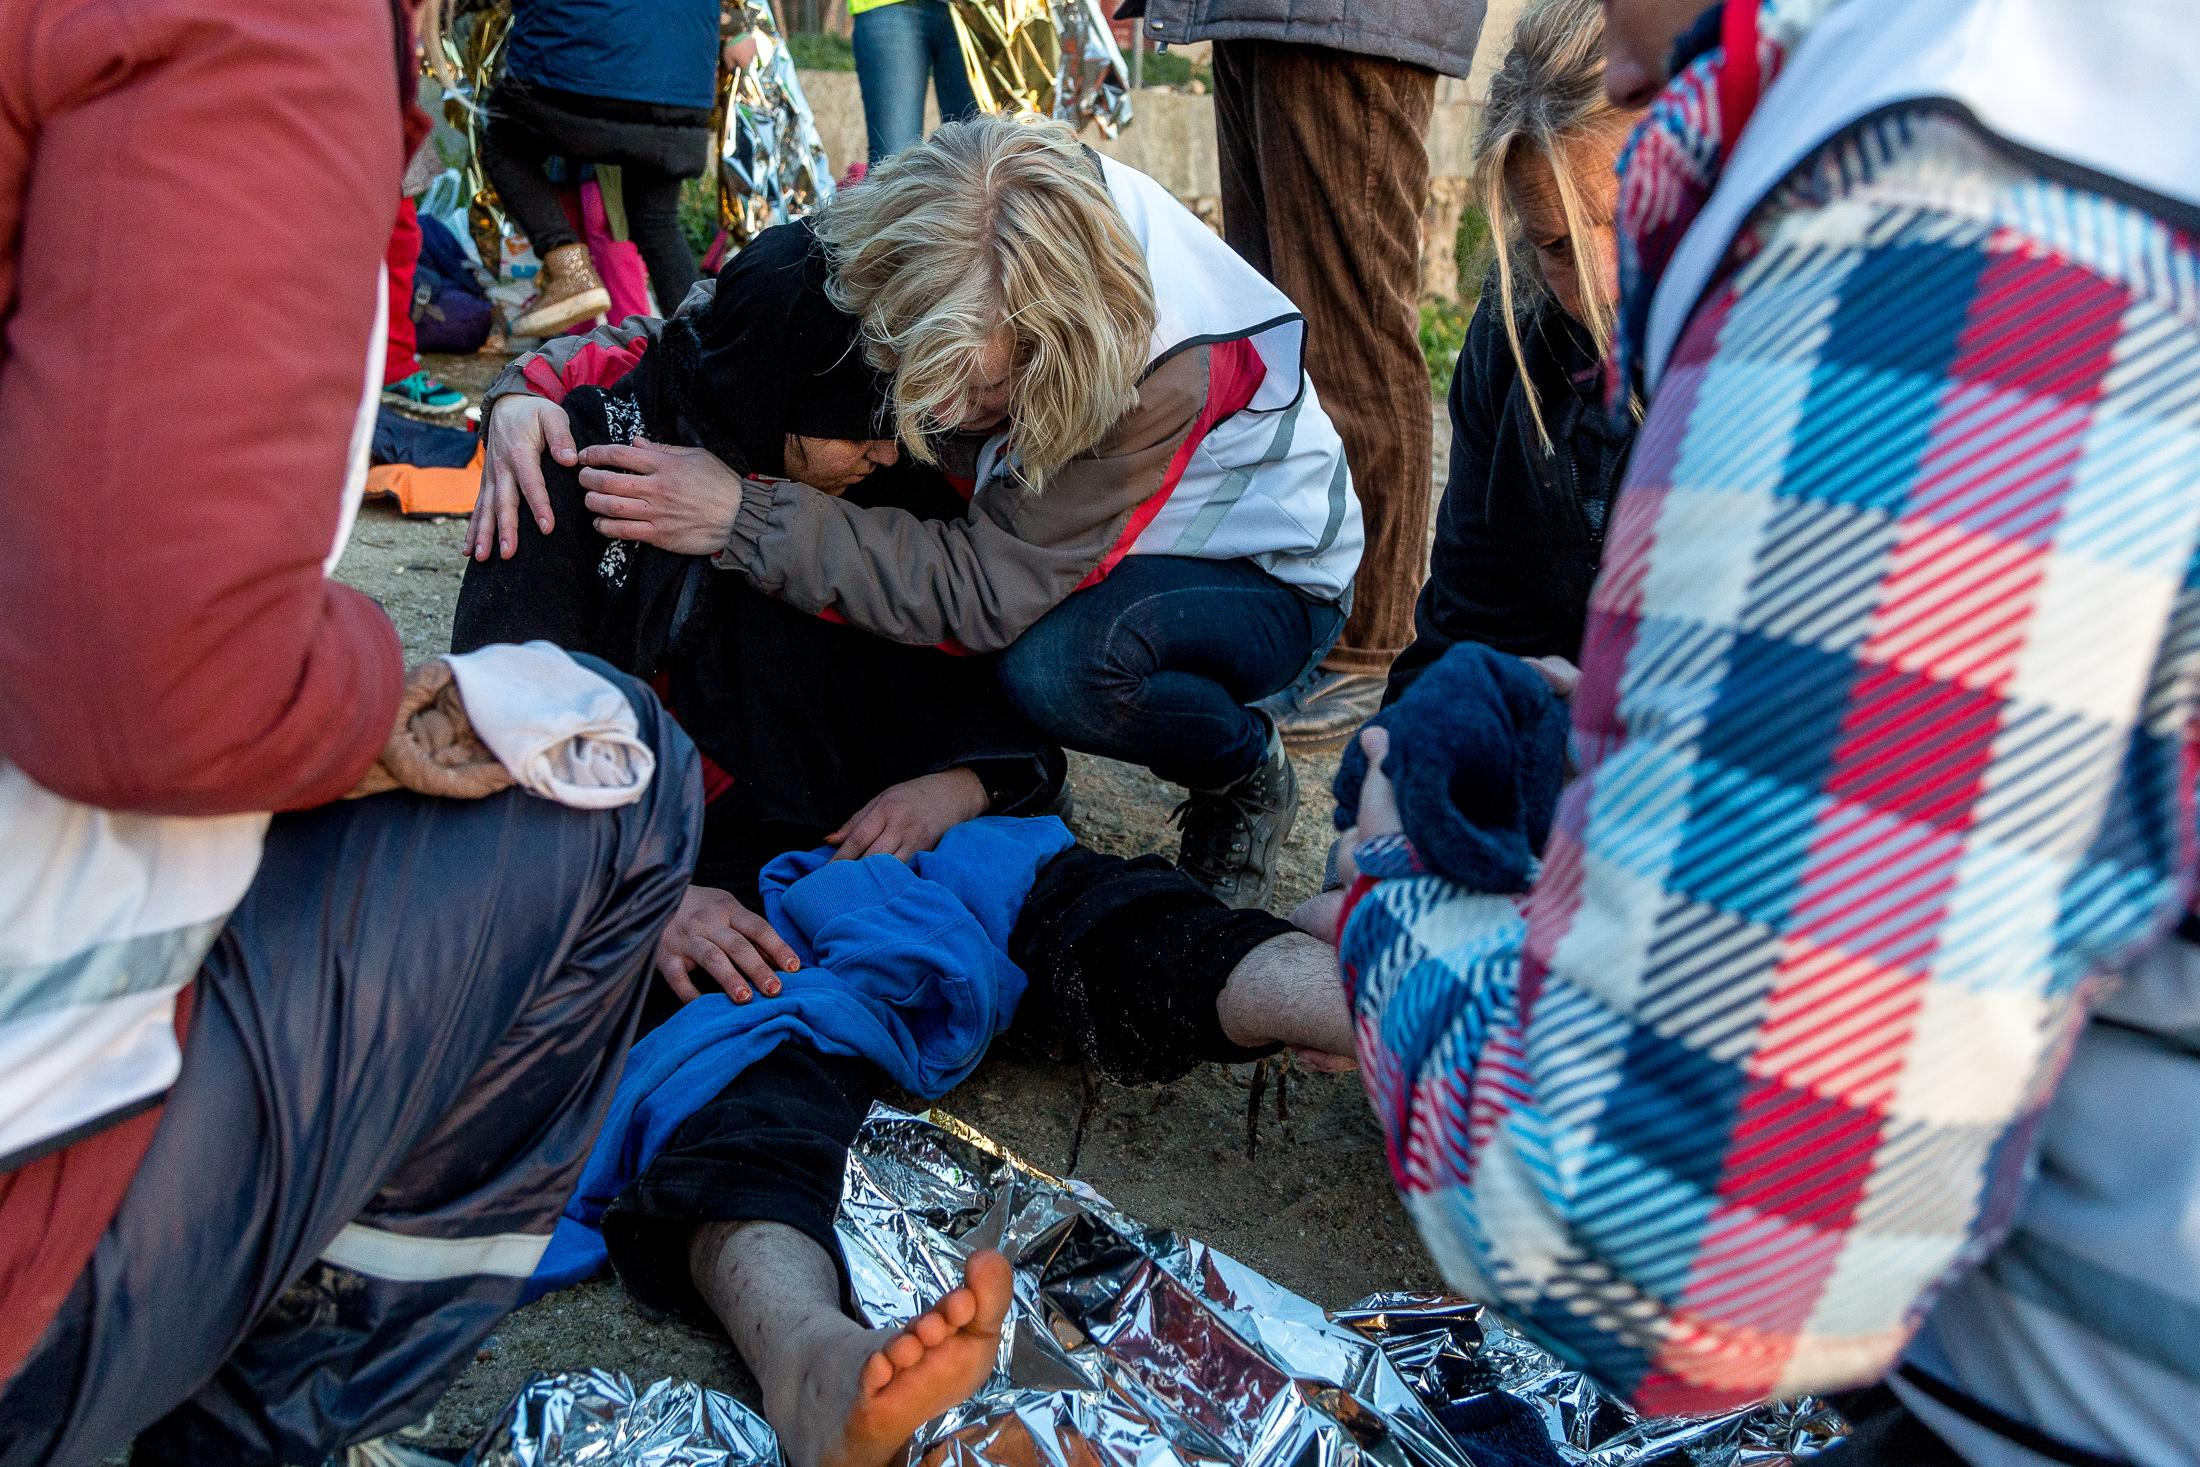 LESVOS, GREECE - FEBRUARY 09, 2016: Volunteers comfort a Syrian refugee suffering from hypothermia after their arrival on a beach in South Lesvos with other refugees and migrants from the Turkish coast on February 09, 2015 in Lesvos, Greece. Photo: © Omar Havana for Action Aid Greece